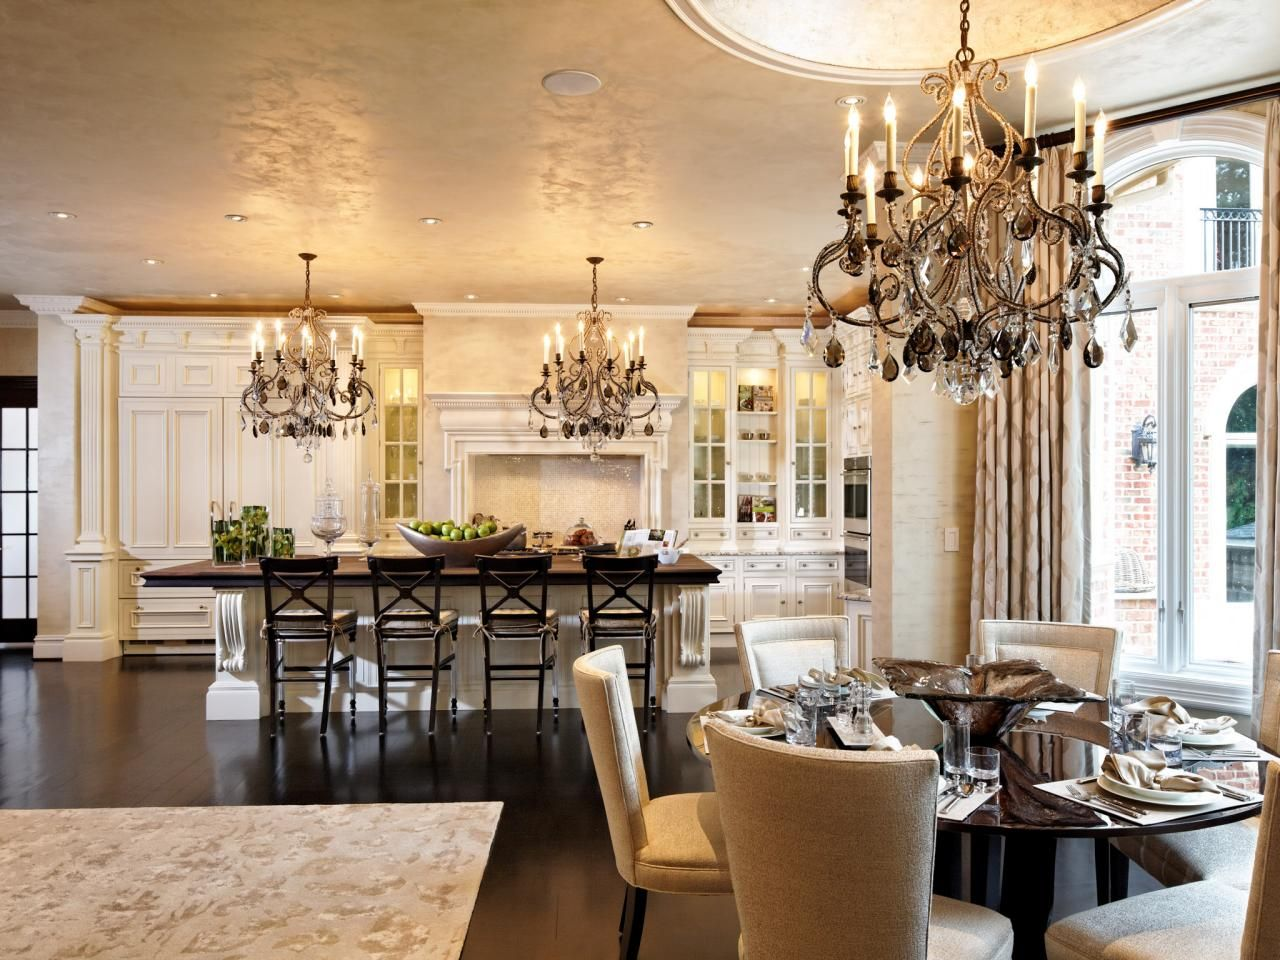 kitchen island table ideas and options hgtv pictures glass kitchen island table ideas and options hgtv pictures